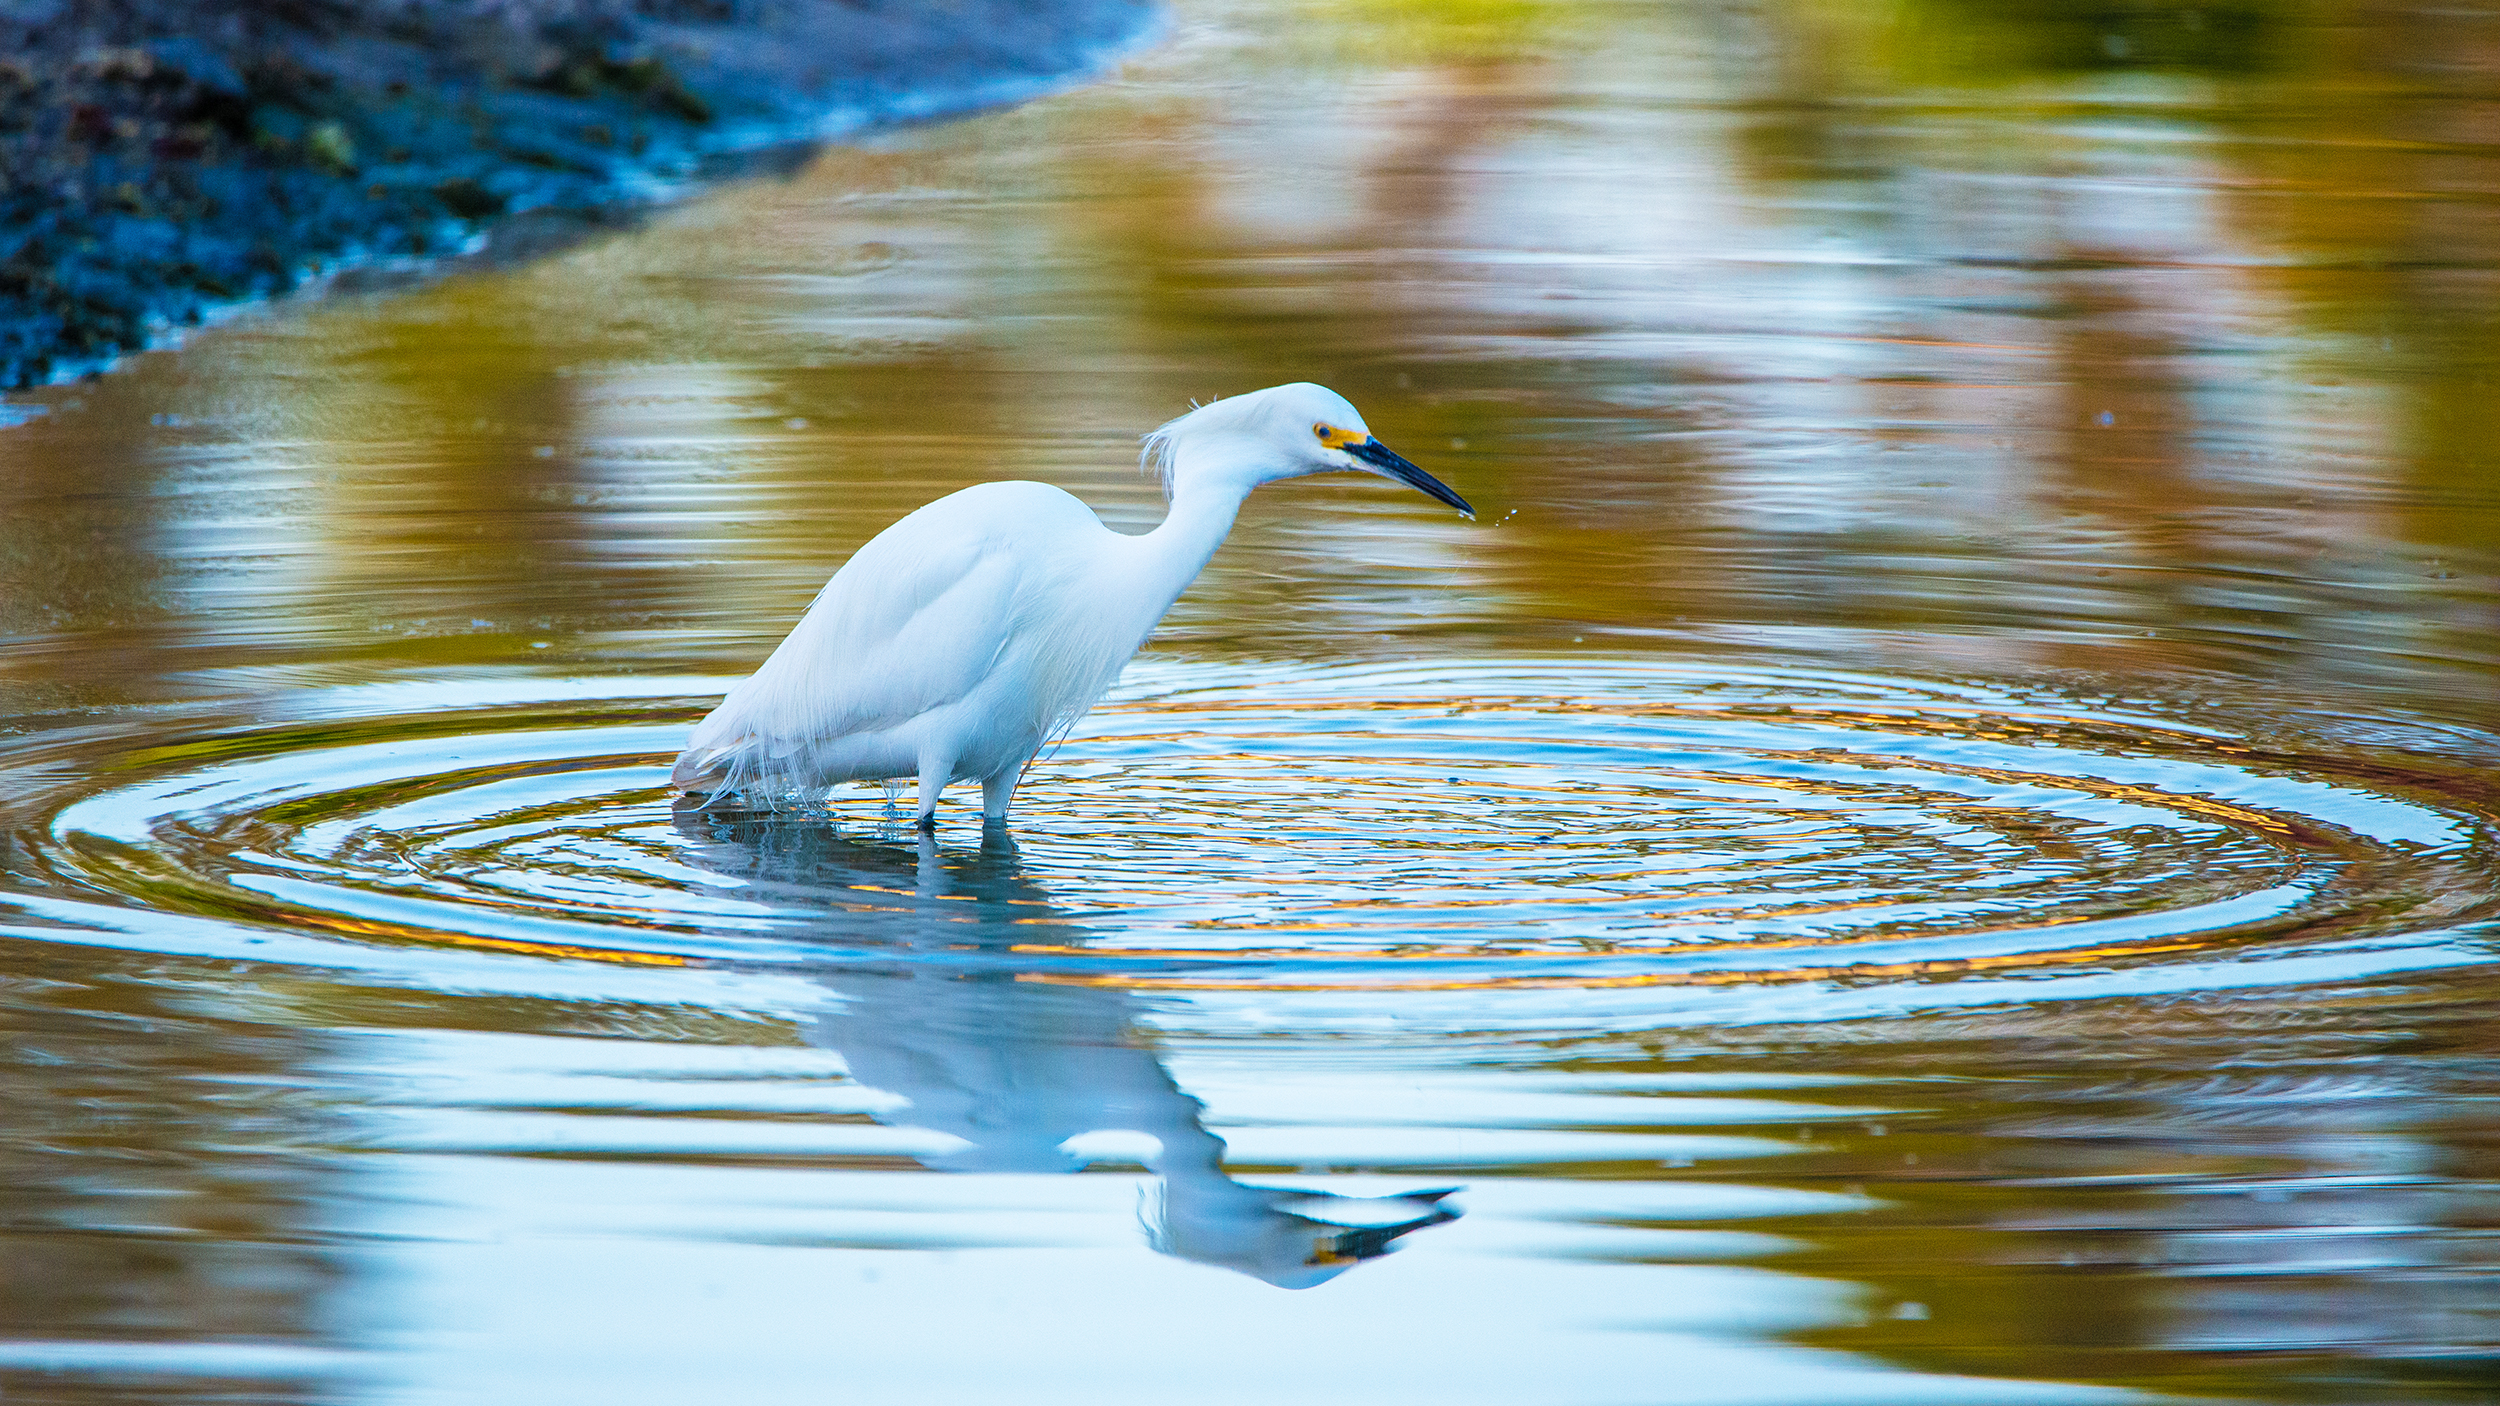 #greategret, #ripples, #lake, #water, #fishing, #reflection, #color, #dawn, #morninglight, #florida, #birds, #egret, #wildlife